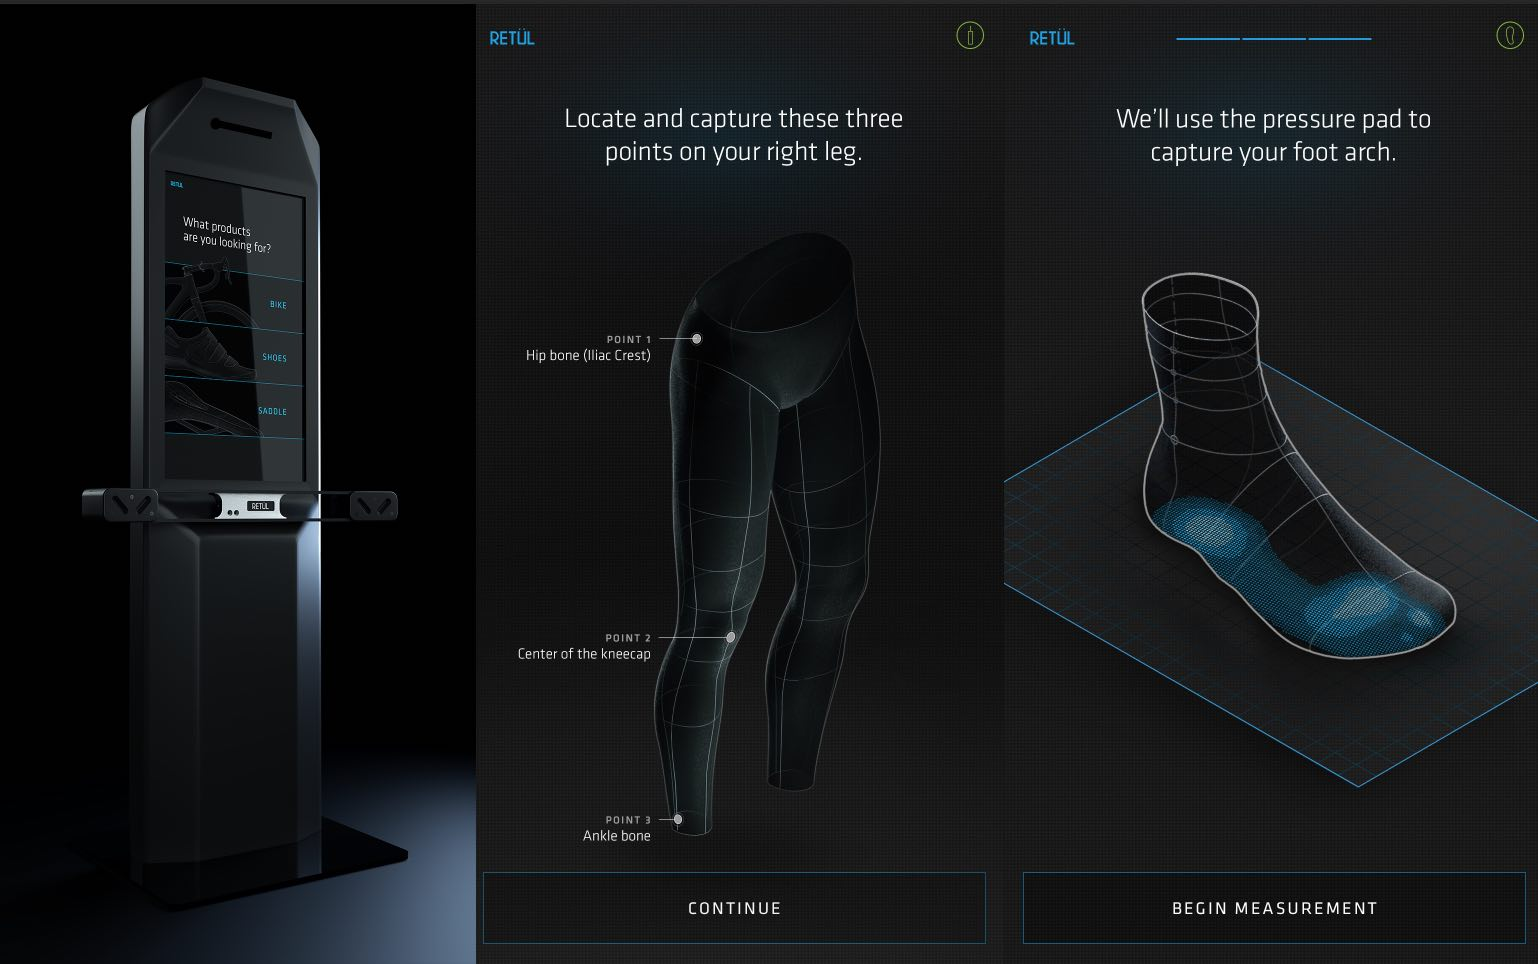 Retul Match offers quick fitting and sizing recommendations to riders in as little as 15 minutes.